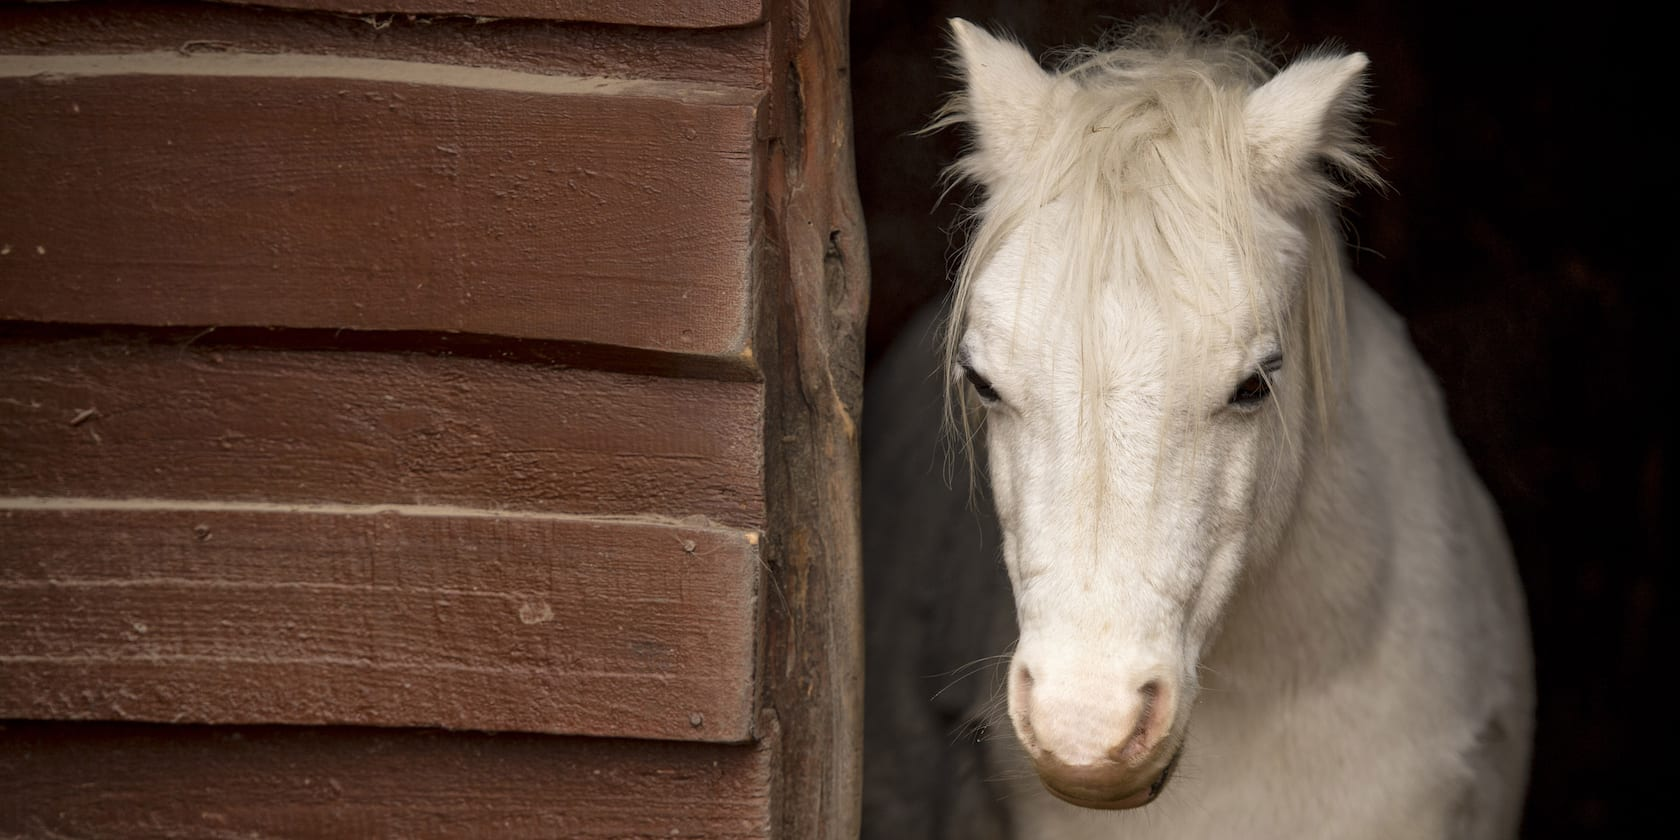 A horse in its stable at an equestrian center in Rouen, France